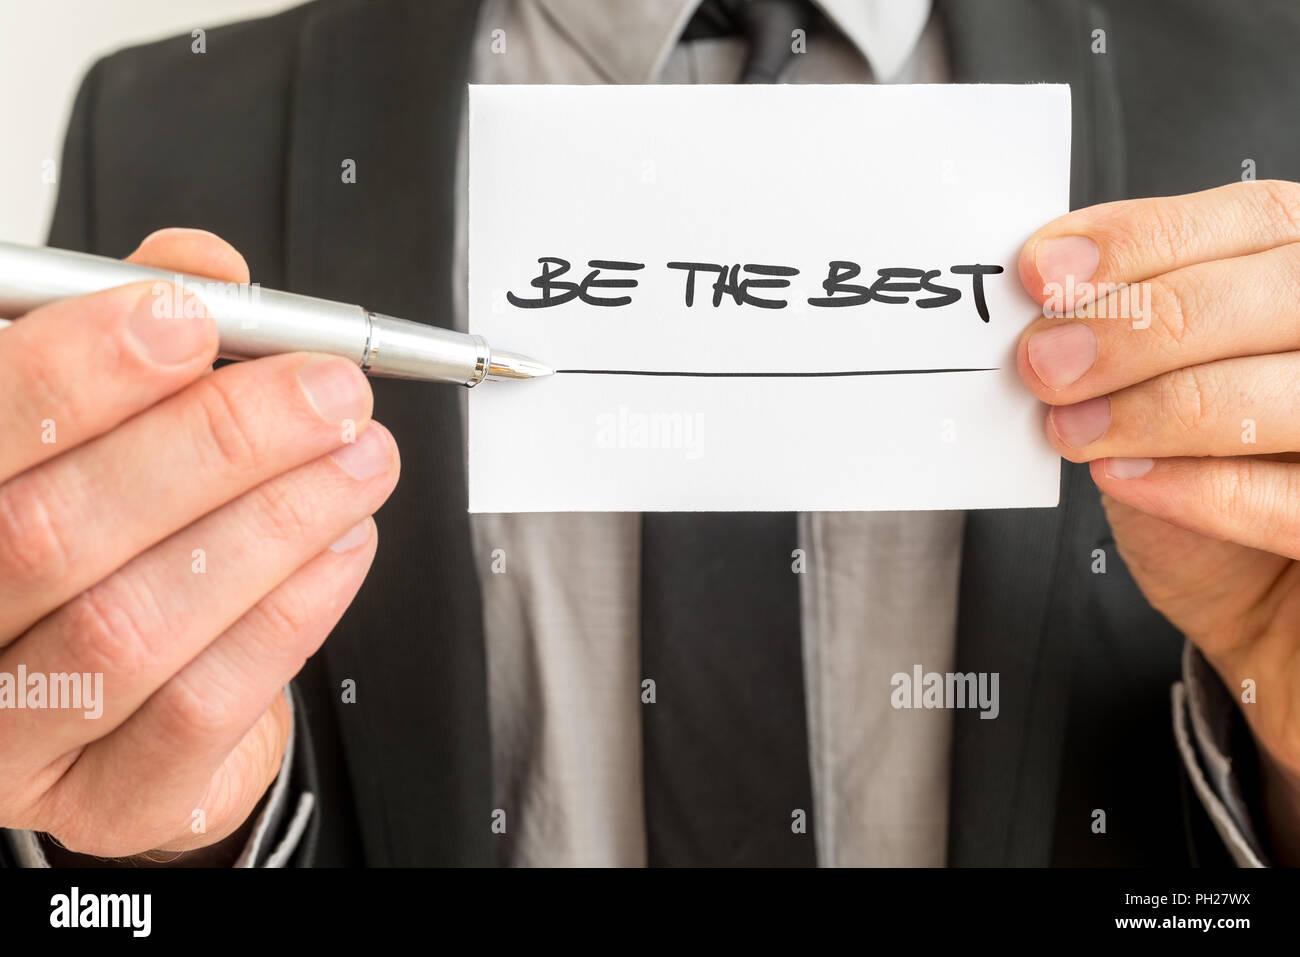 Closeup of personal therapist showing a white card with a Be the best sign encouraging you to live up to your fullest potential and realise your goals - Stock Image